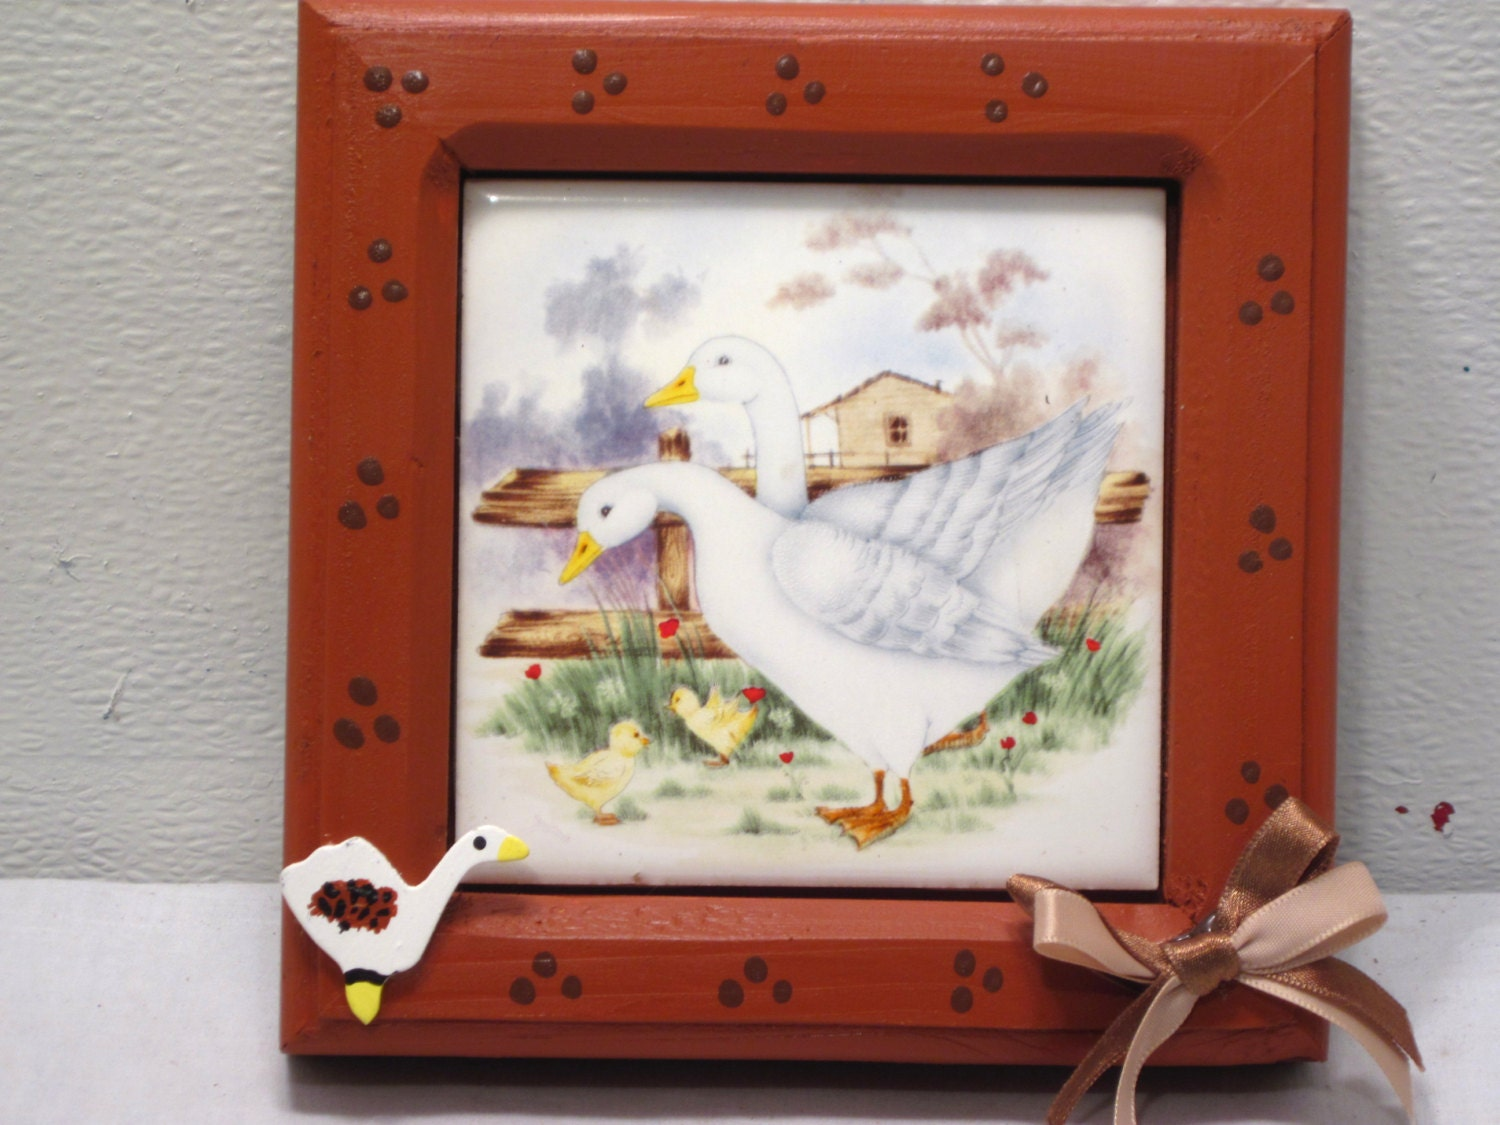 Ceramic country farm duck tile kitchen d cor home art for Duck decorations home